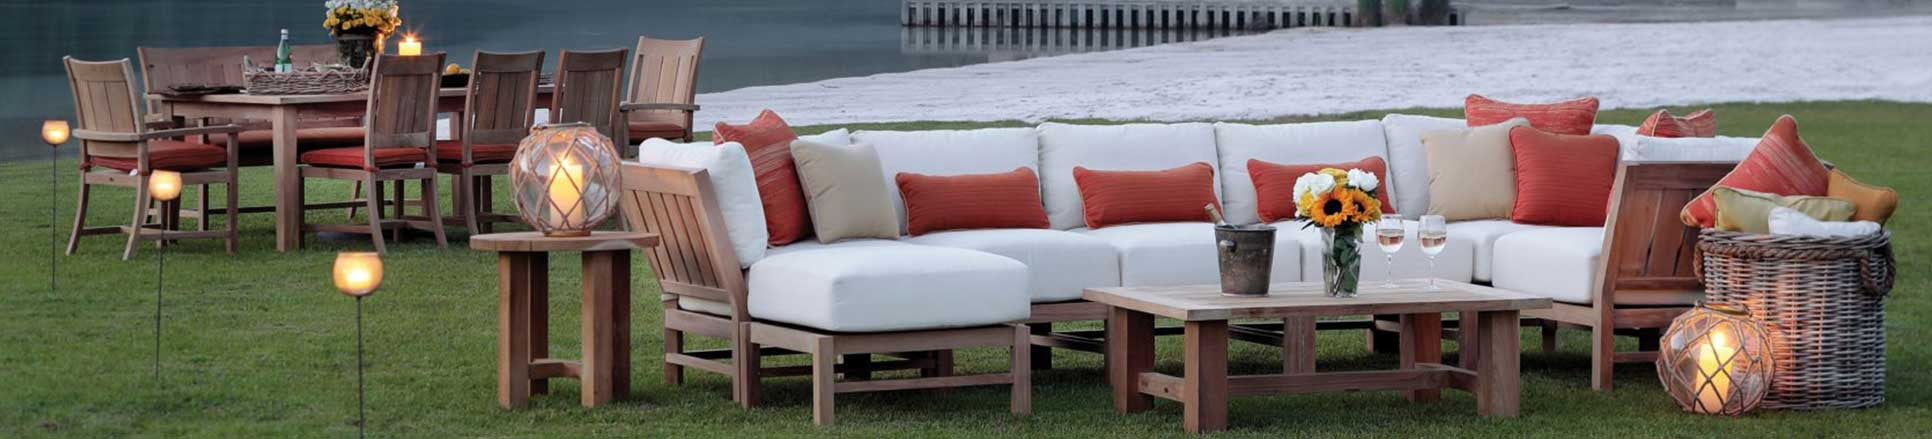 Outdoor Seating and Dining Furniture